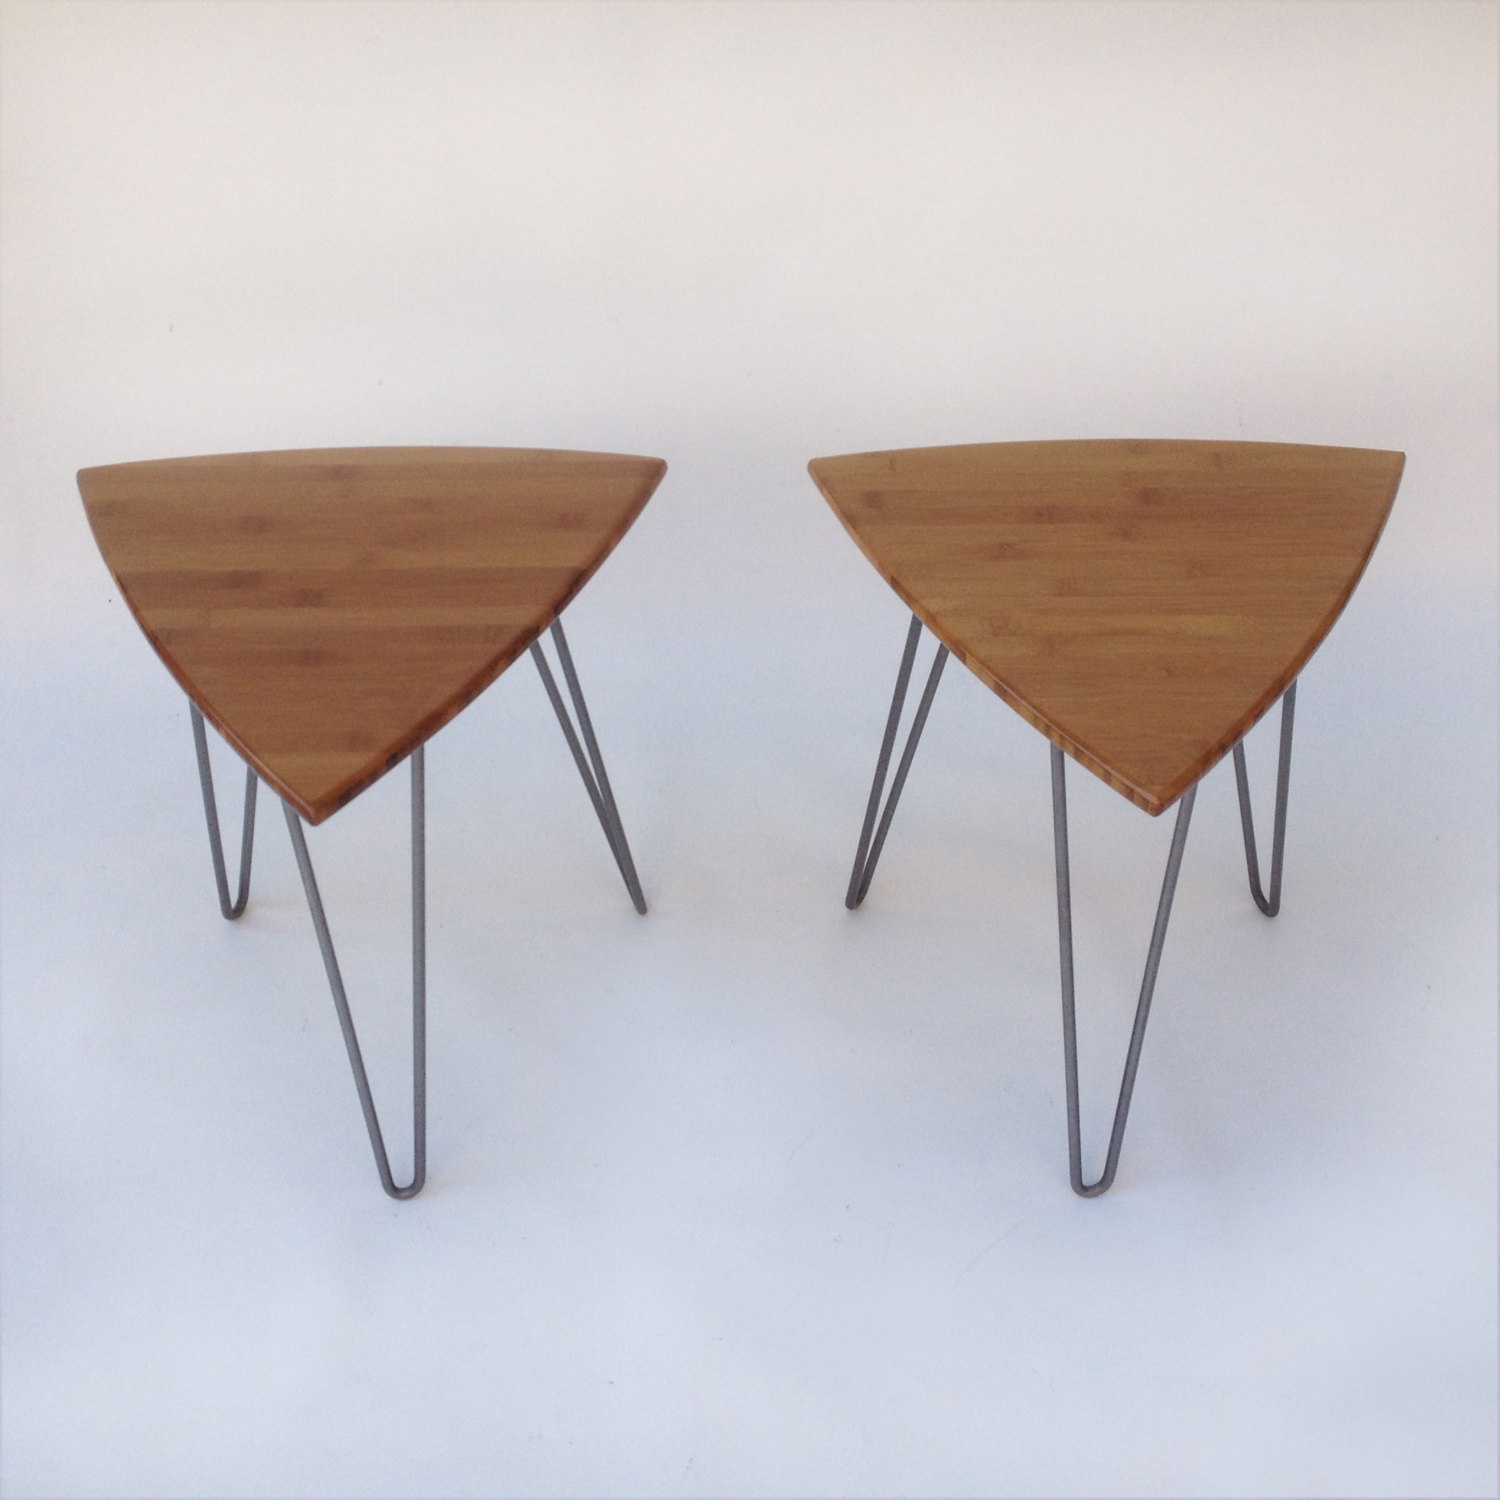 Pair of Guitar Pick Side Tables Mid Century Modern Triangle Shaped